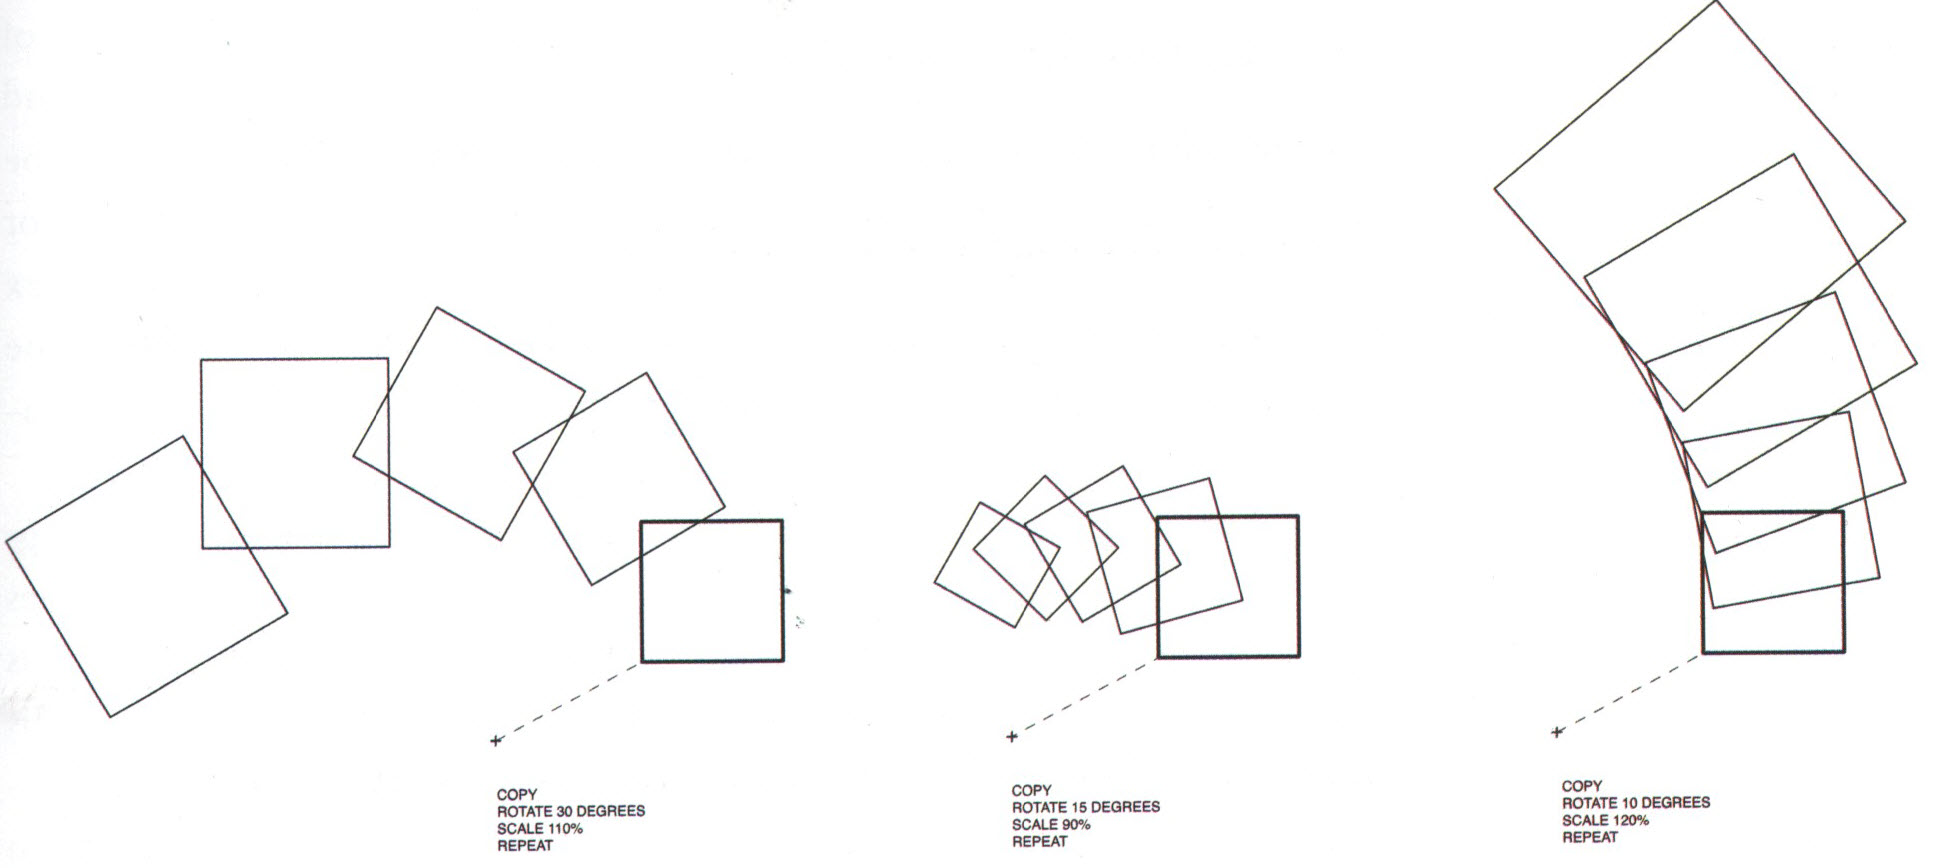 Image from  Digital Design Exercises for Architecture Students , p. 23.